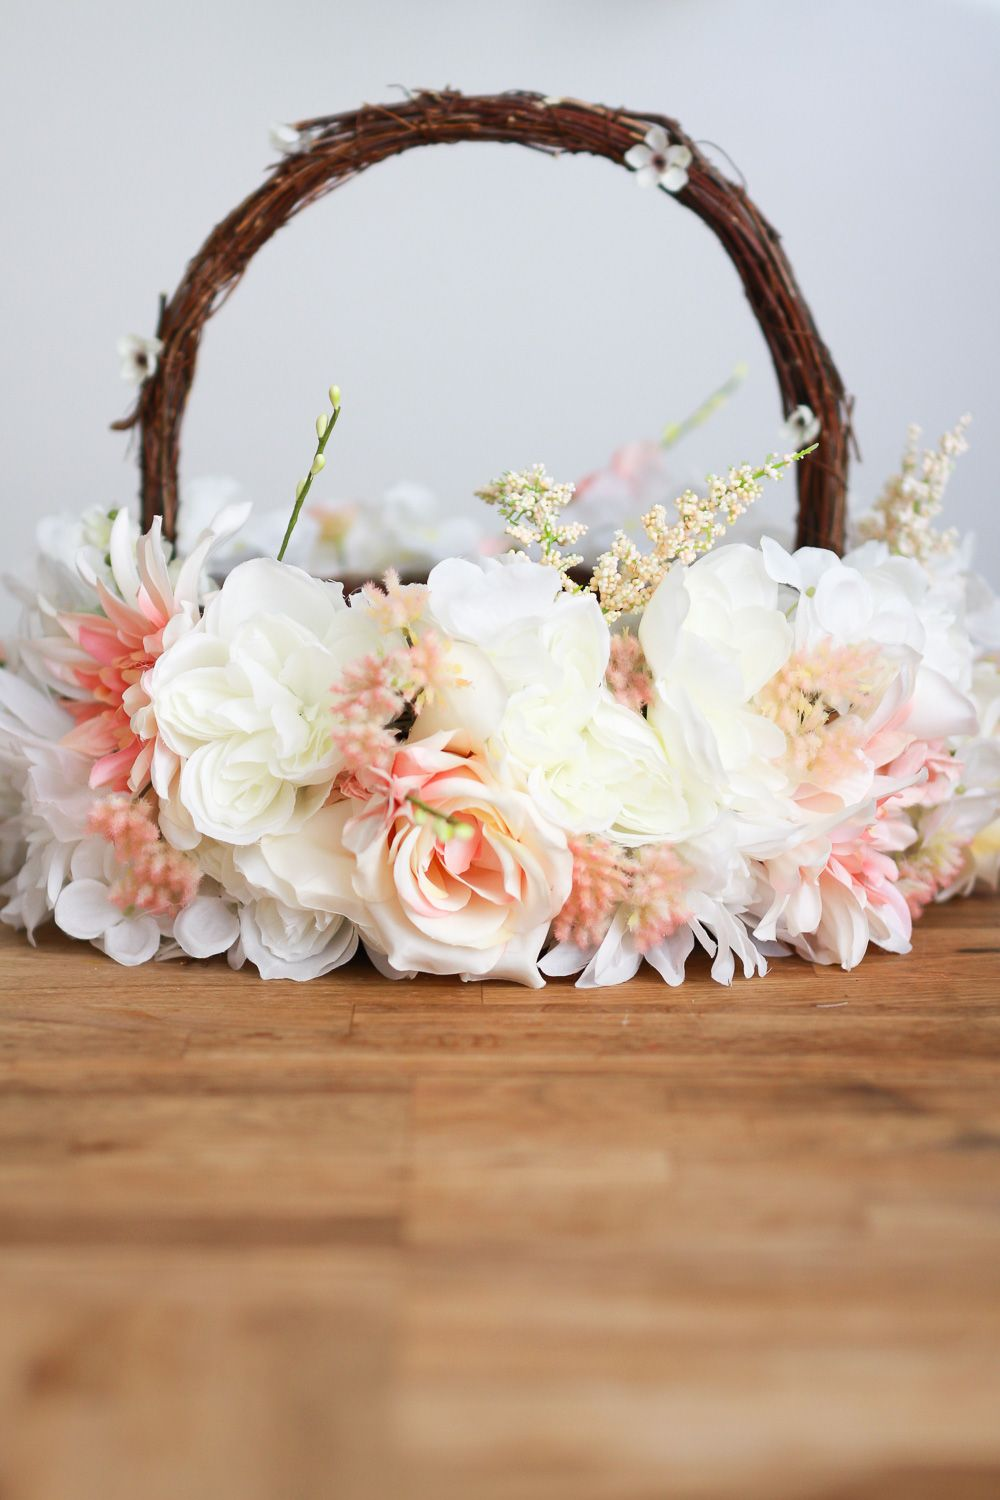 A floral easter basket easter baskets easter and decorating a floral easter basket diy a beautiful basket to decorate for easter for a childrens easter egg hunt or for a weddings flower girlboy take a look izmirmasajfo